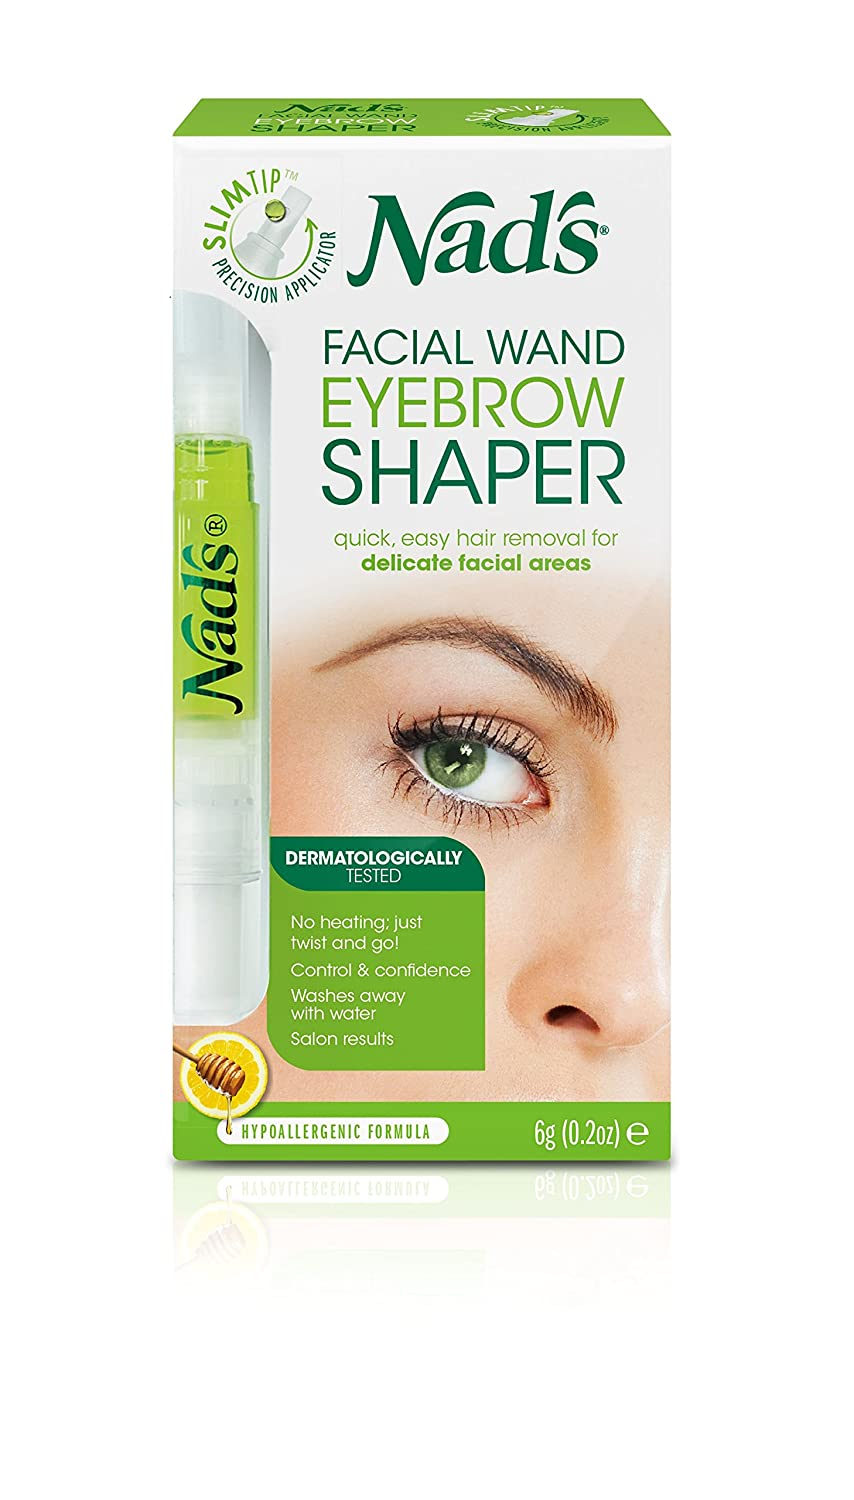 eyebrow shaper. eyebrow shaper